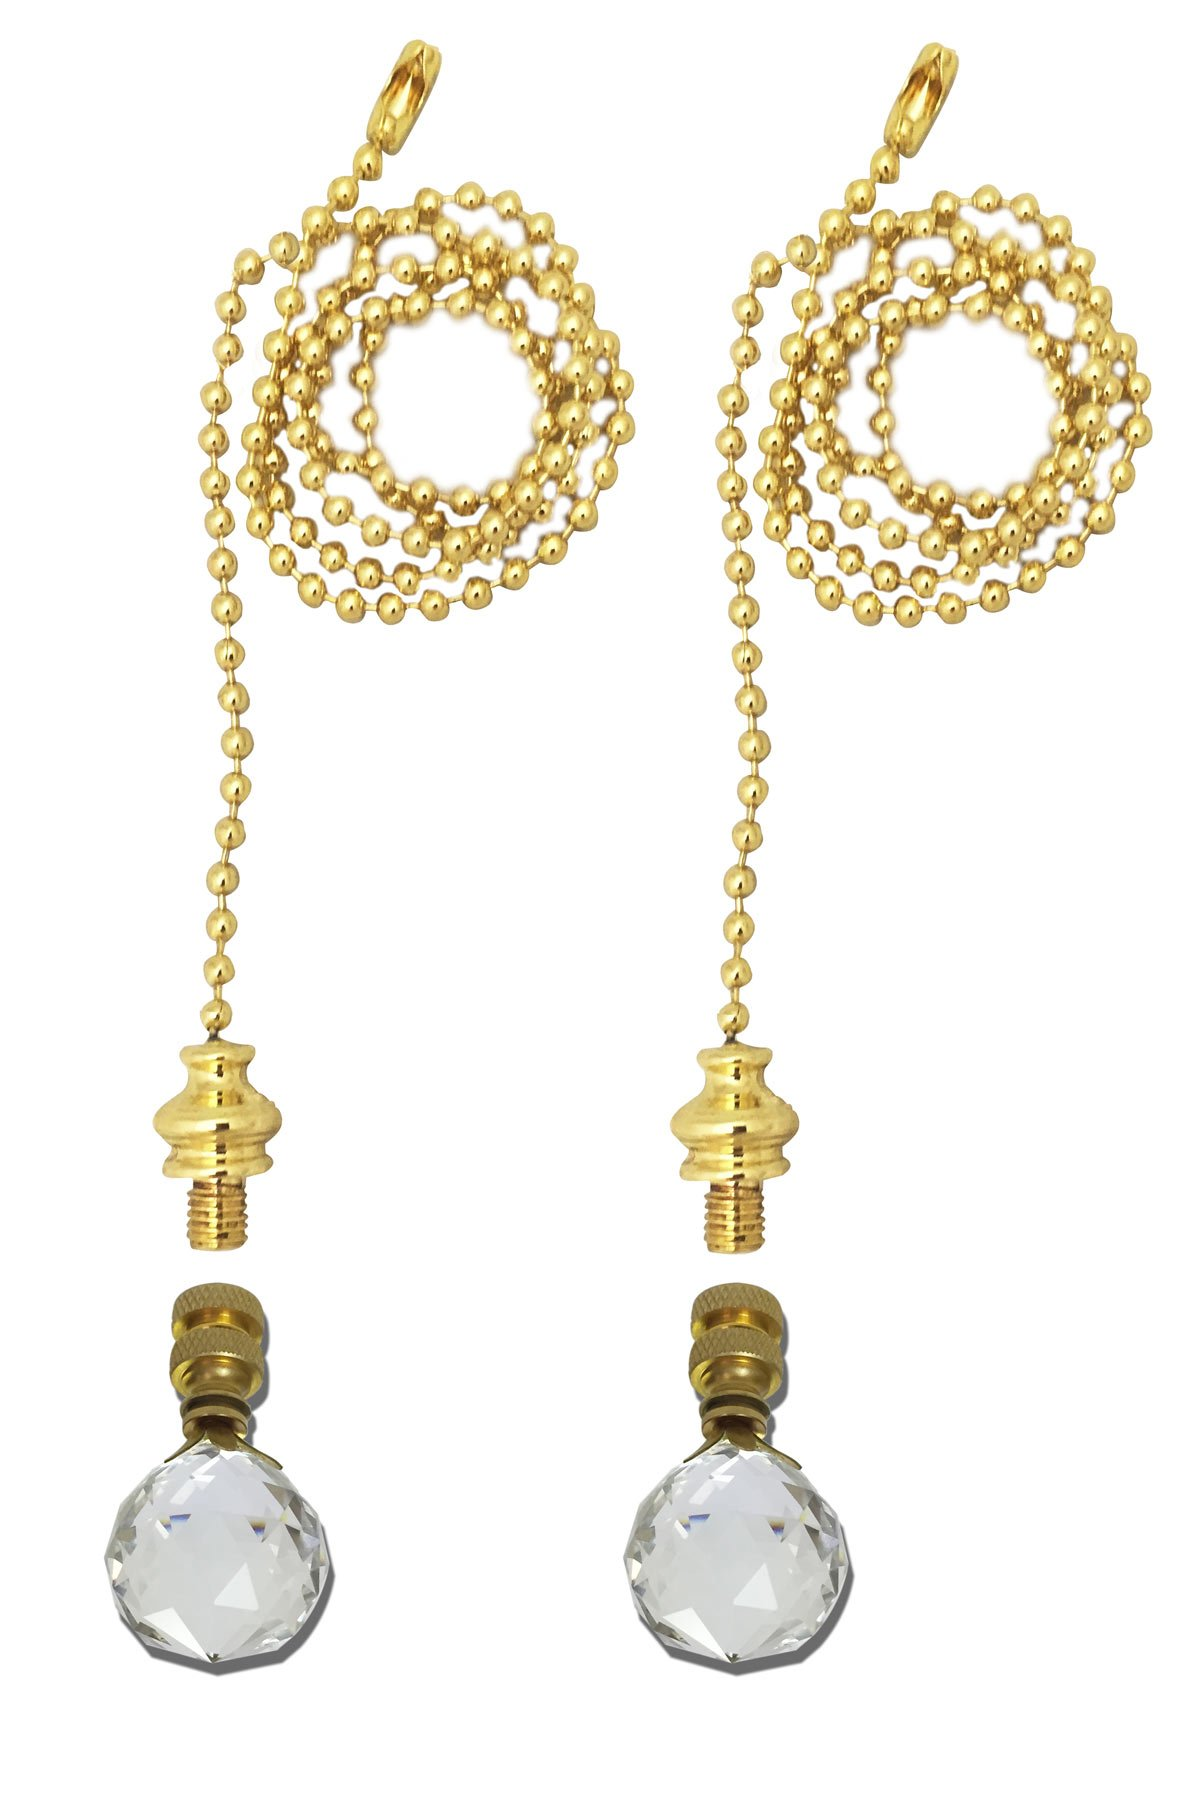 Royal Designs Fan Pull Chain with Medium Faceted Diamond Cut Crystal Finial – Polished Brass – Set of 2